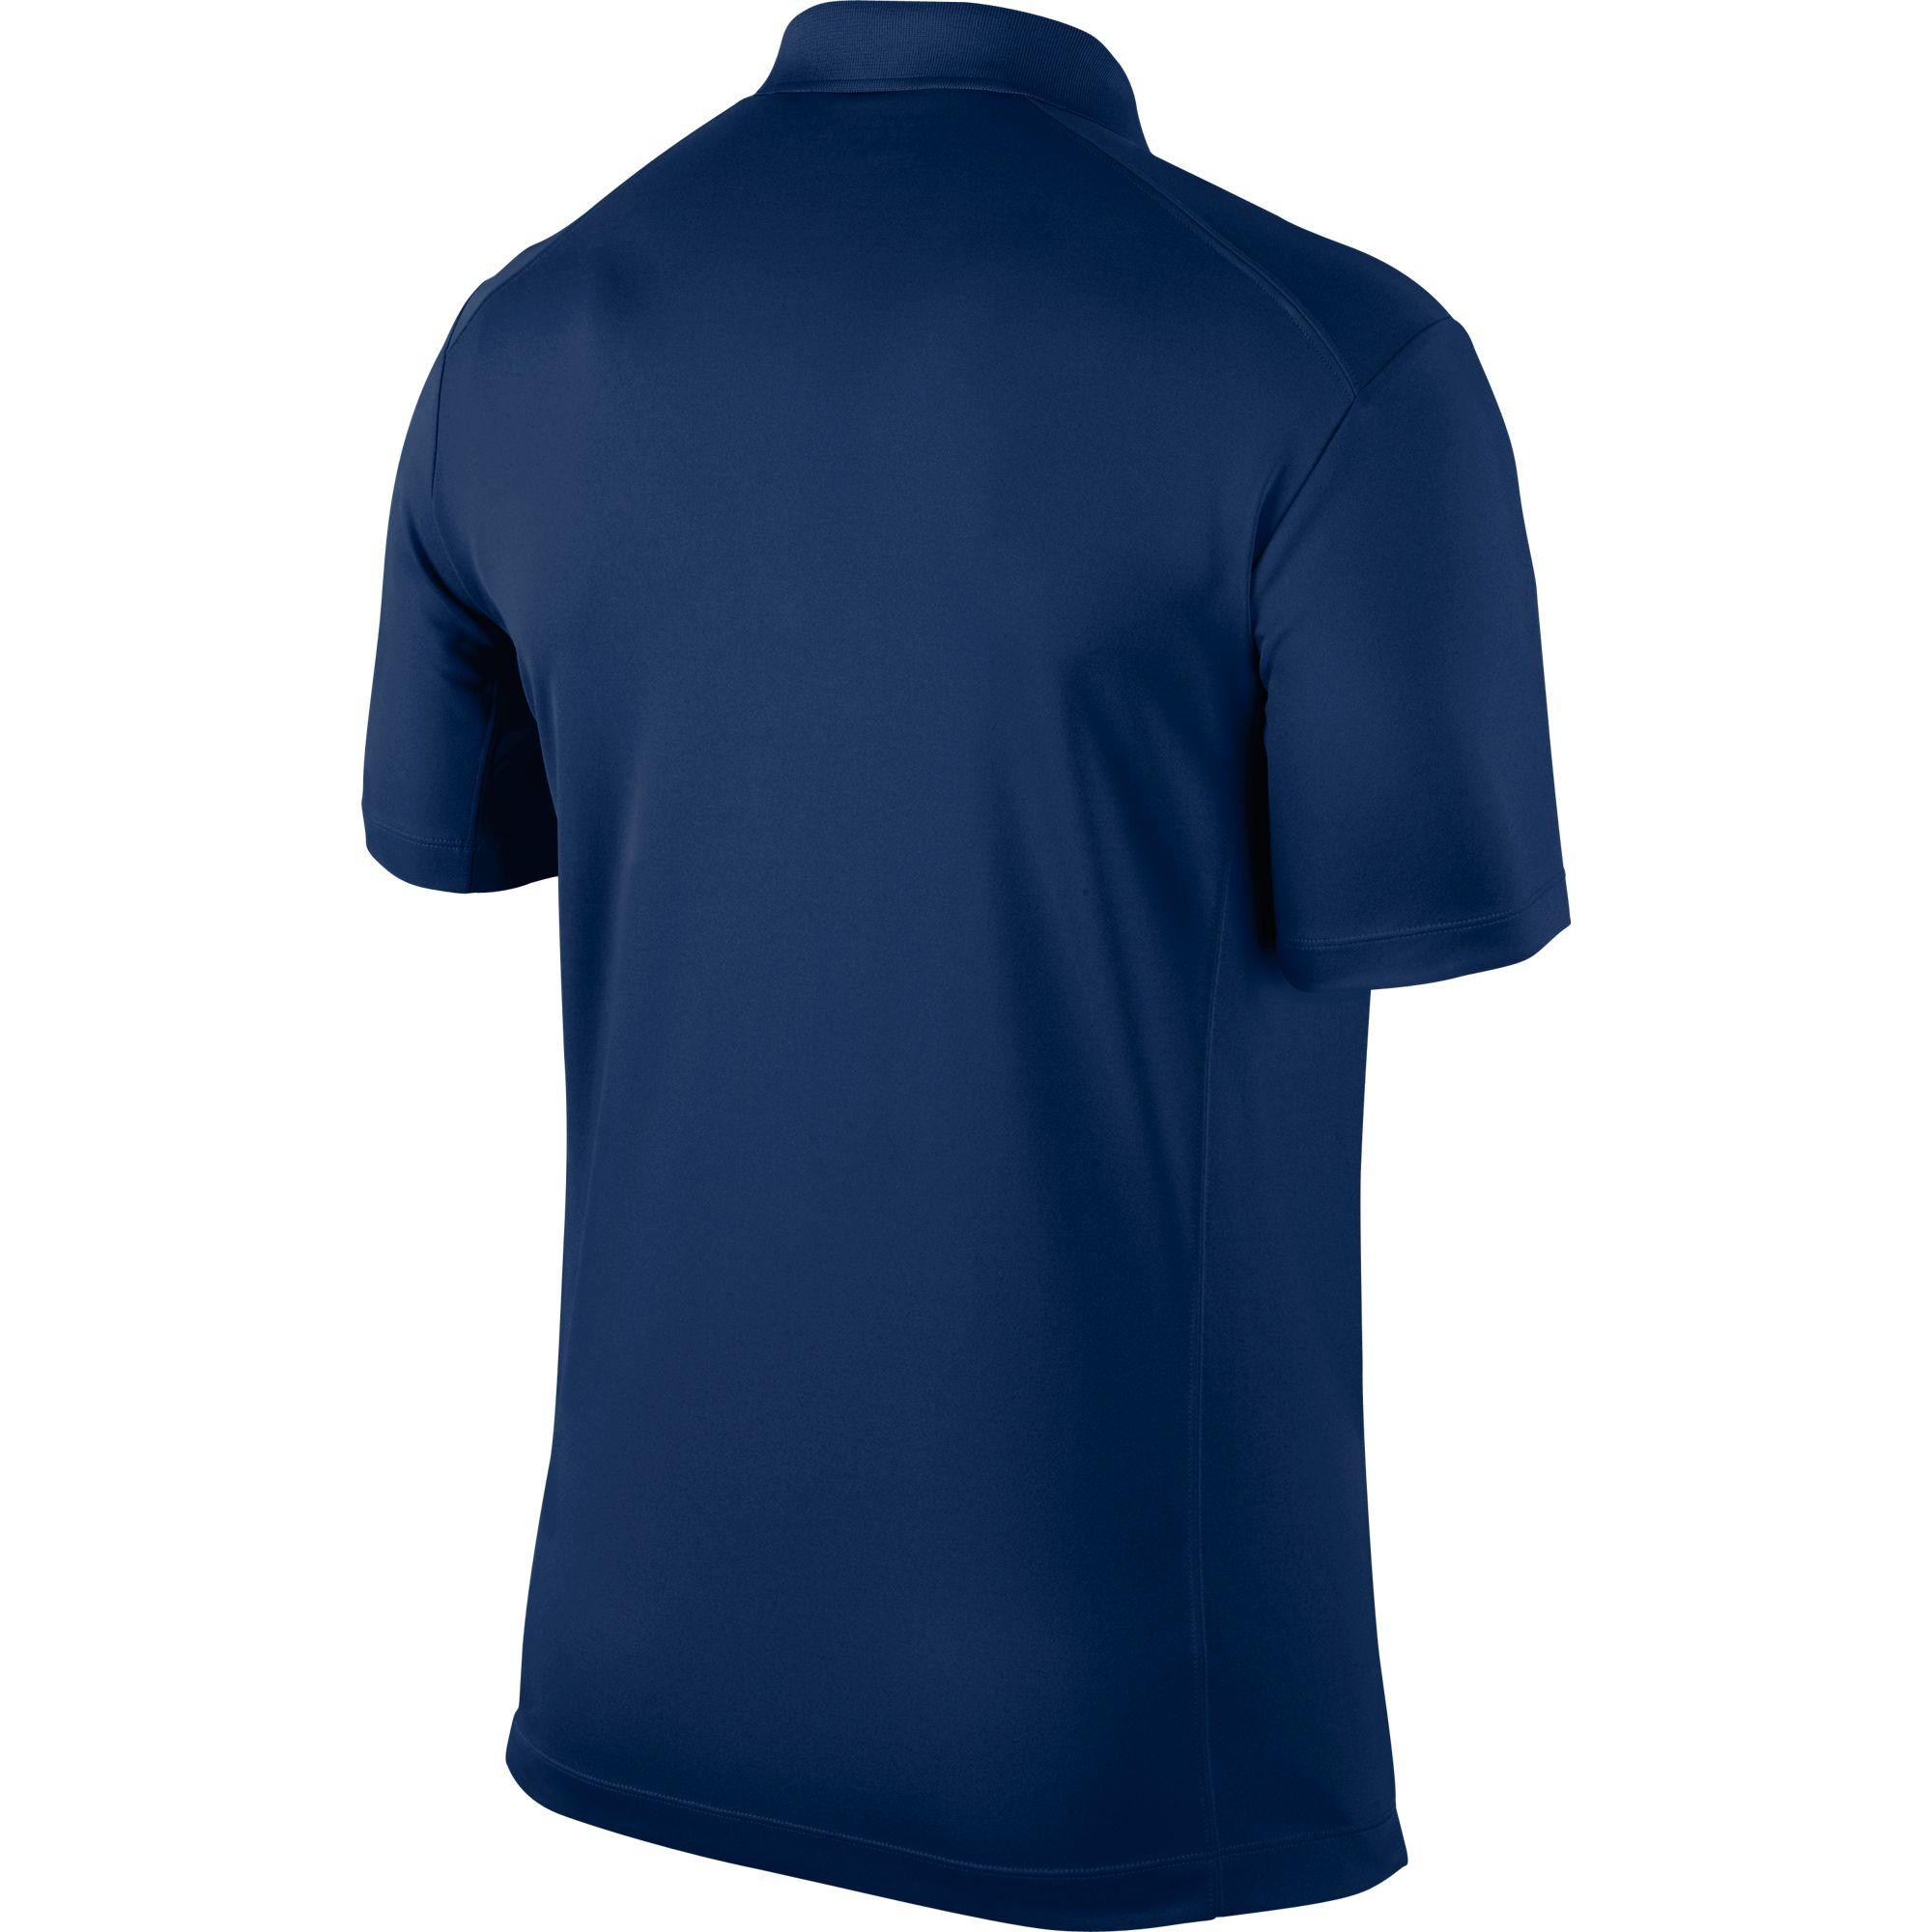 Men's Victory Solid Polo Golf Shirt, Navy, large